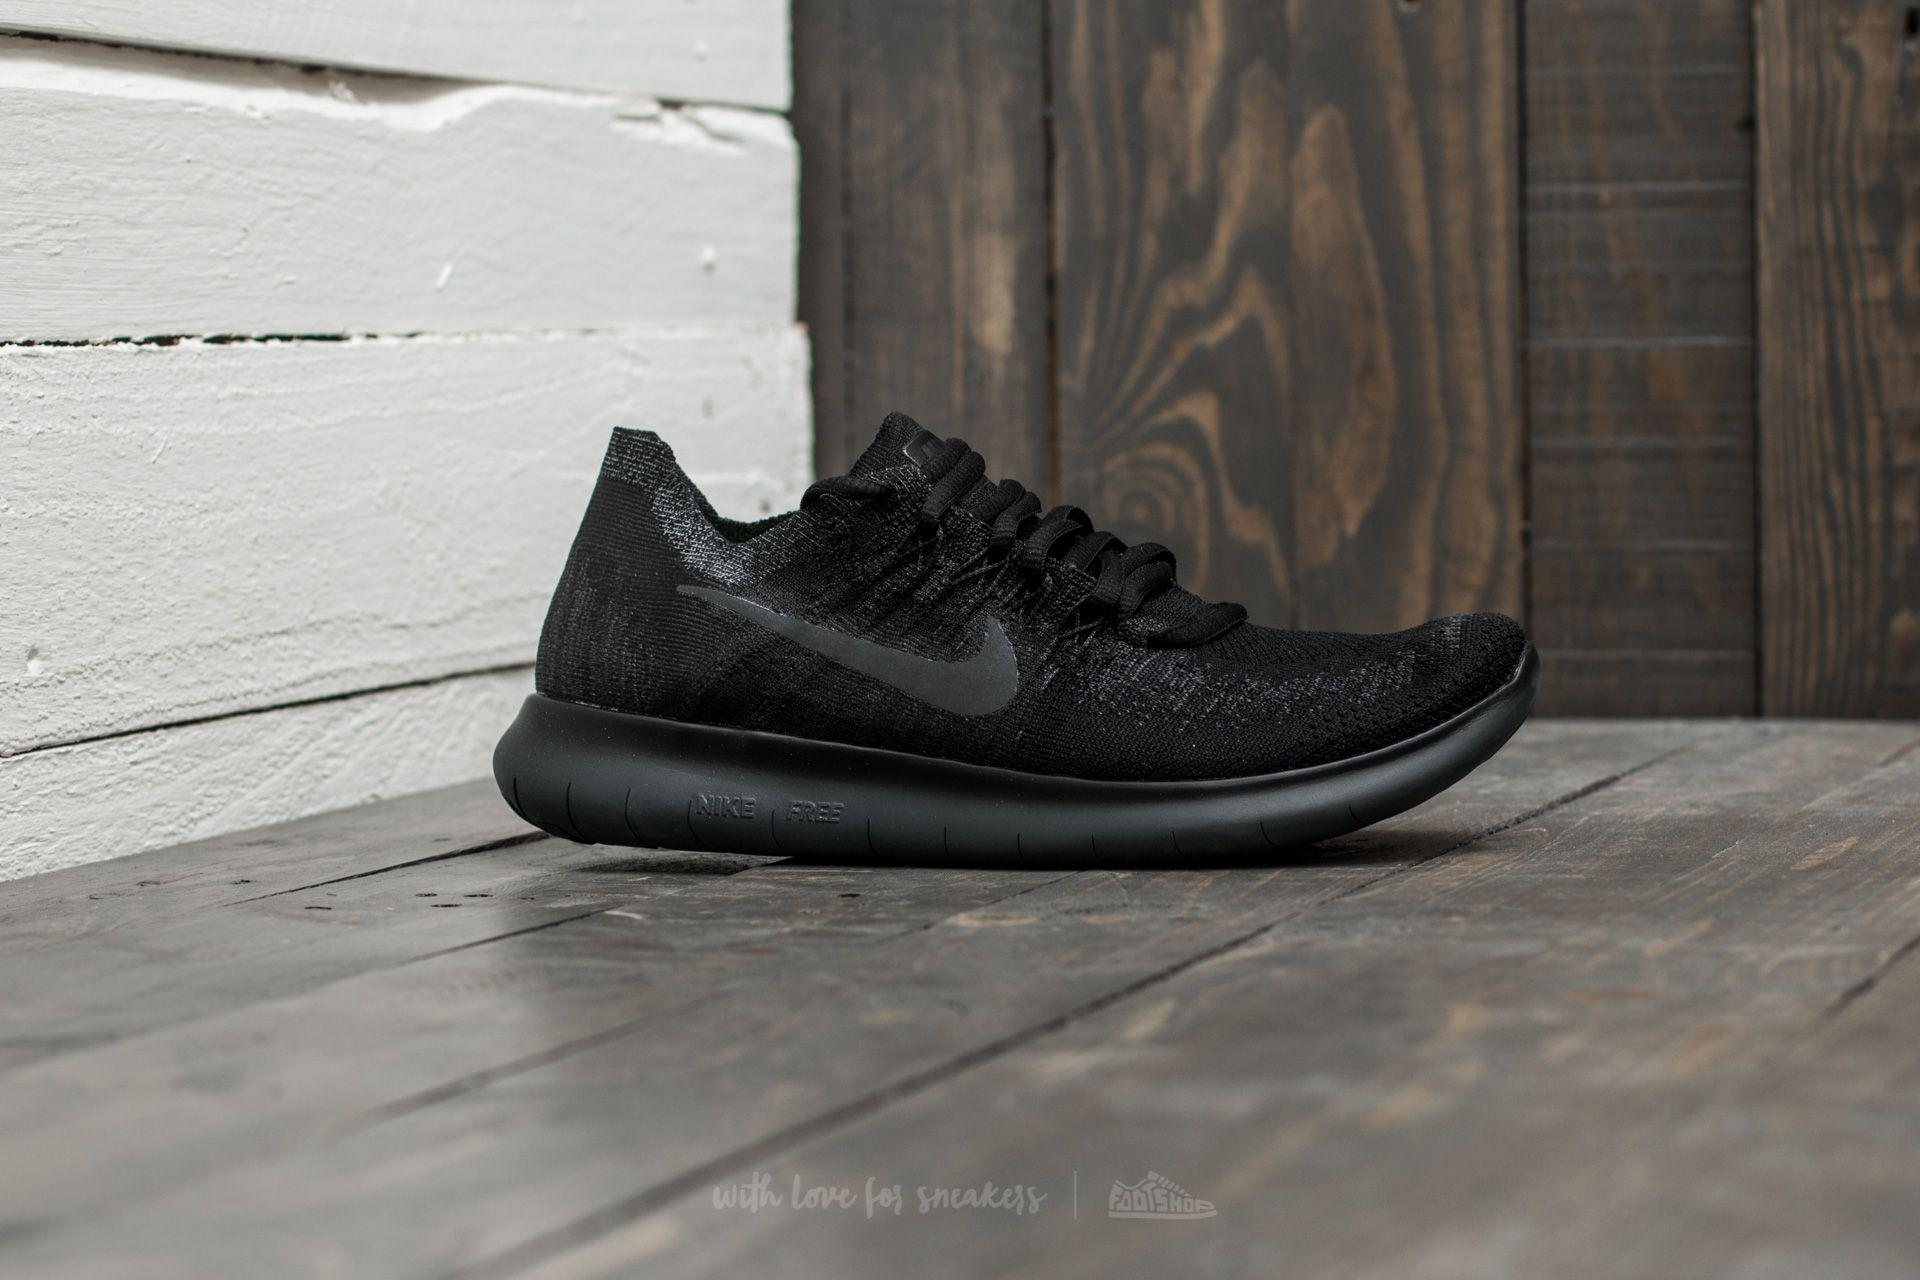 7802208a79195 Lyst - Nike Wmns Free Rn Flyknit 2017 Black  Anthracite-anthracite ...